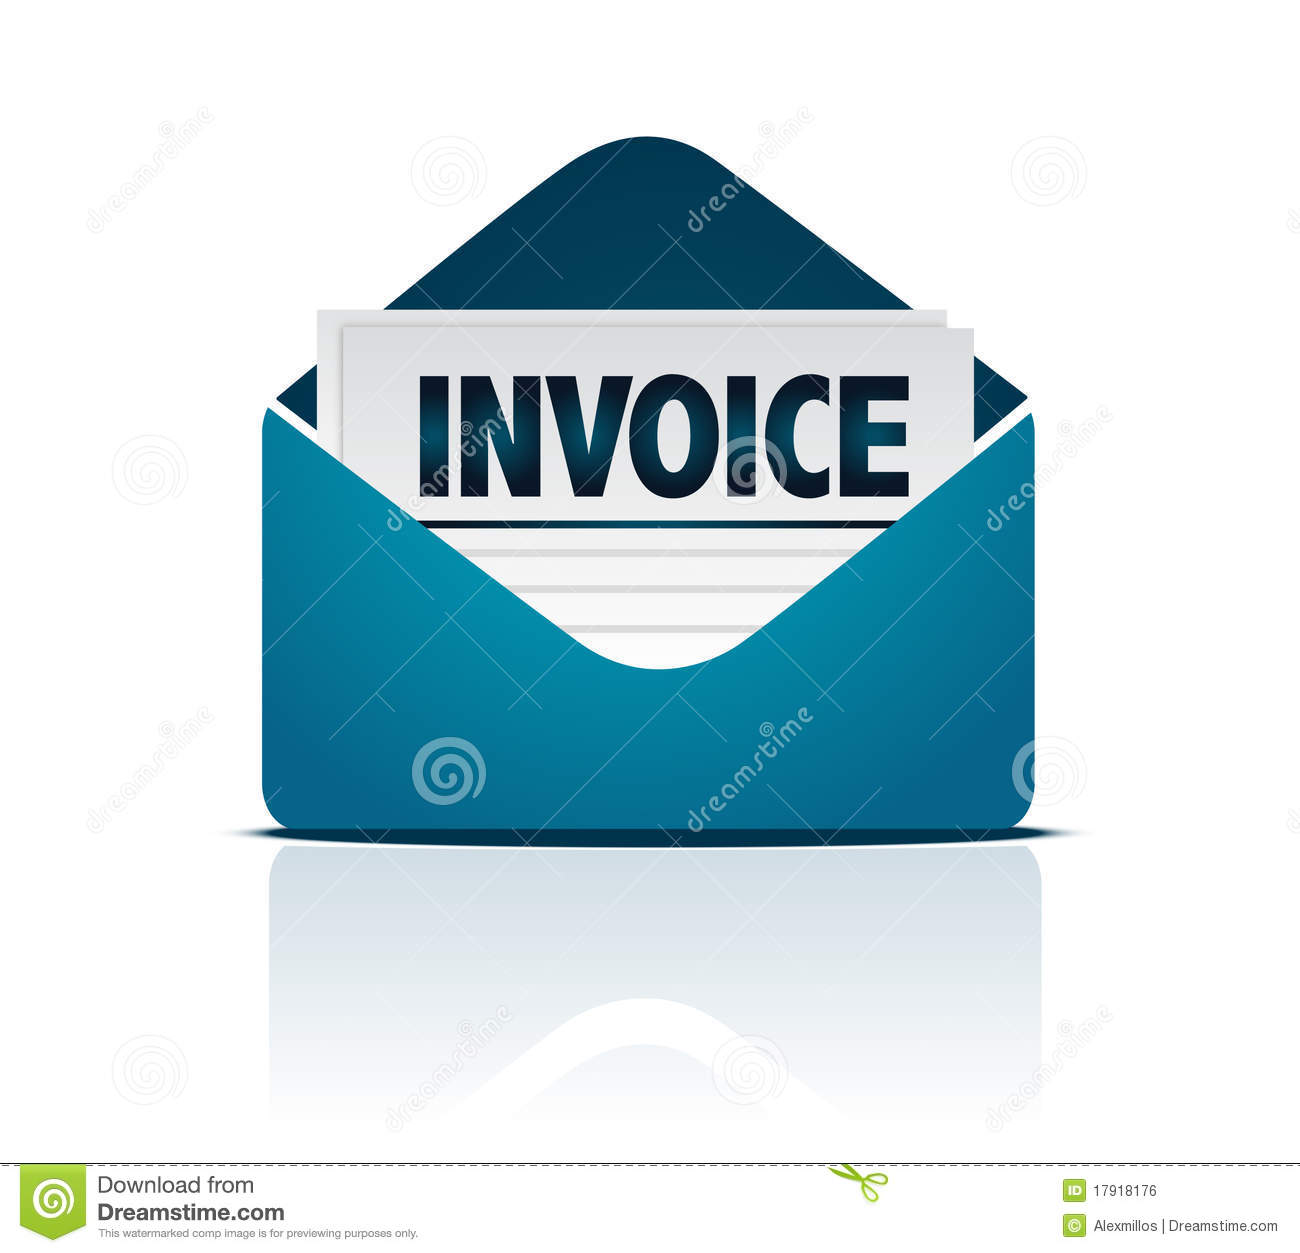 Download Blank Invoice Excel Invoice Stock Illustrations   Invoice Stock Illustrations  Simple Excel Invoice Template Excel with Sell Invoices Invoice With Envelope Royalty Free Stock Image Purchase Invoice Format